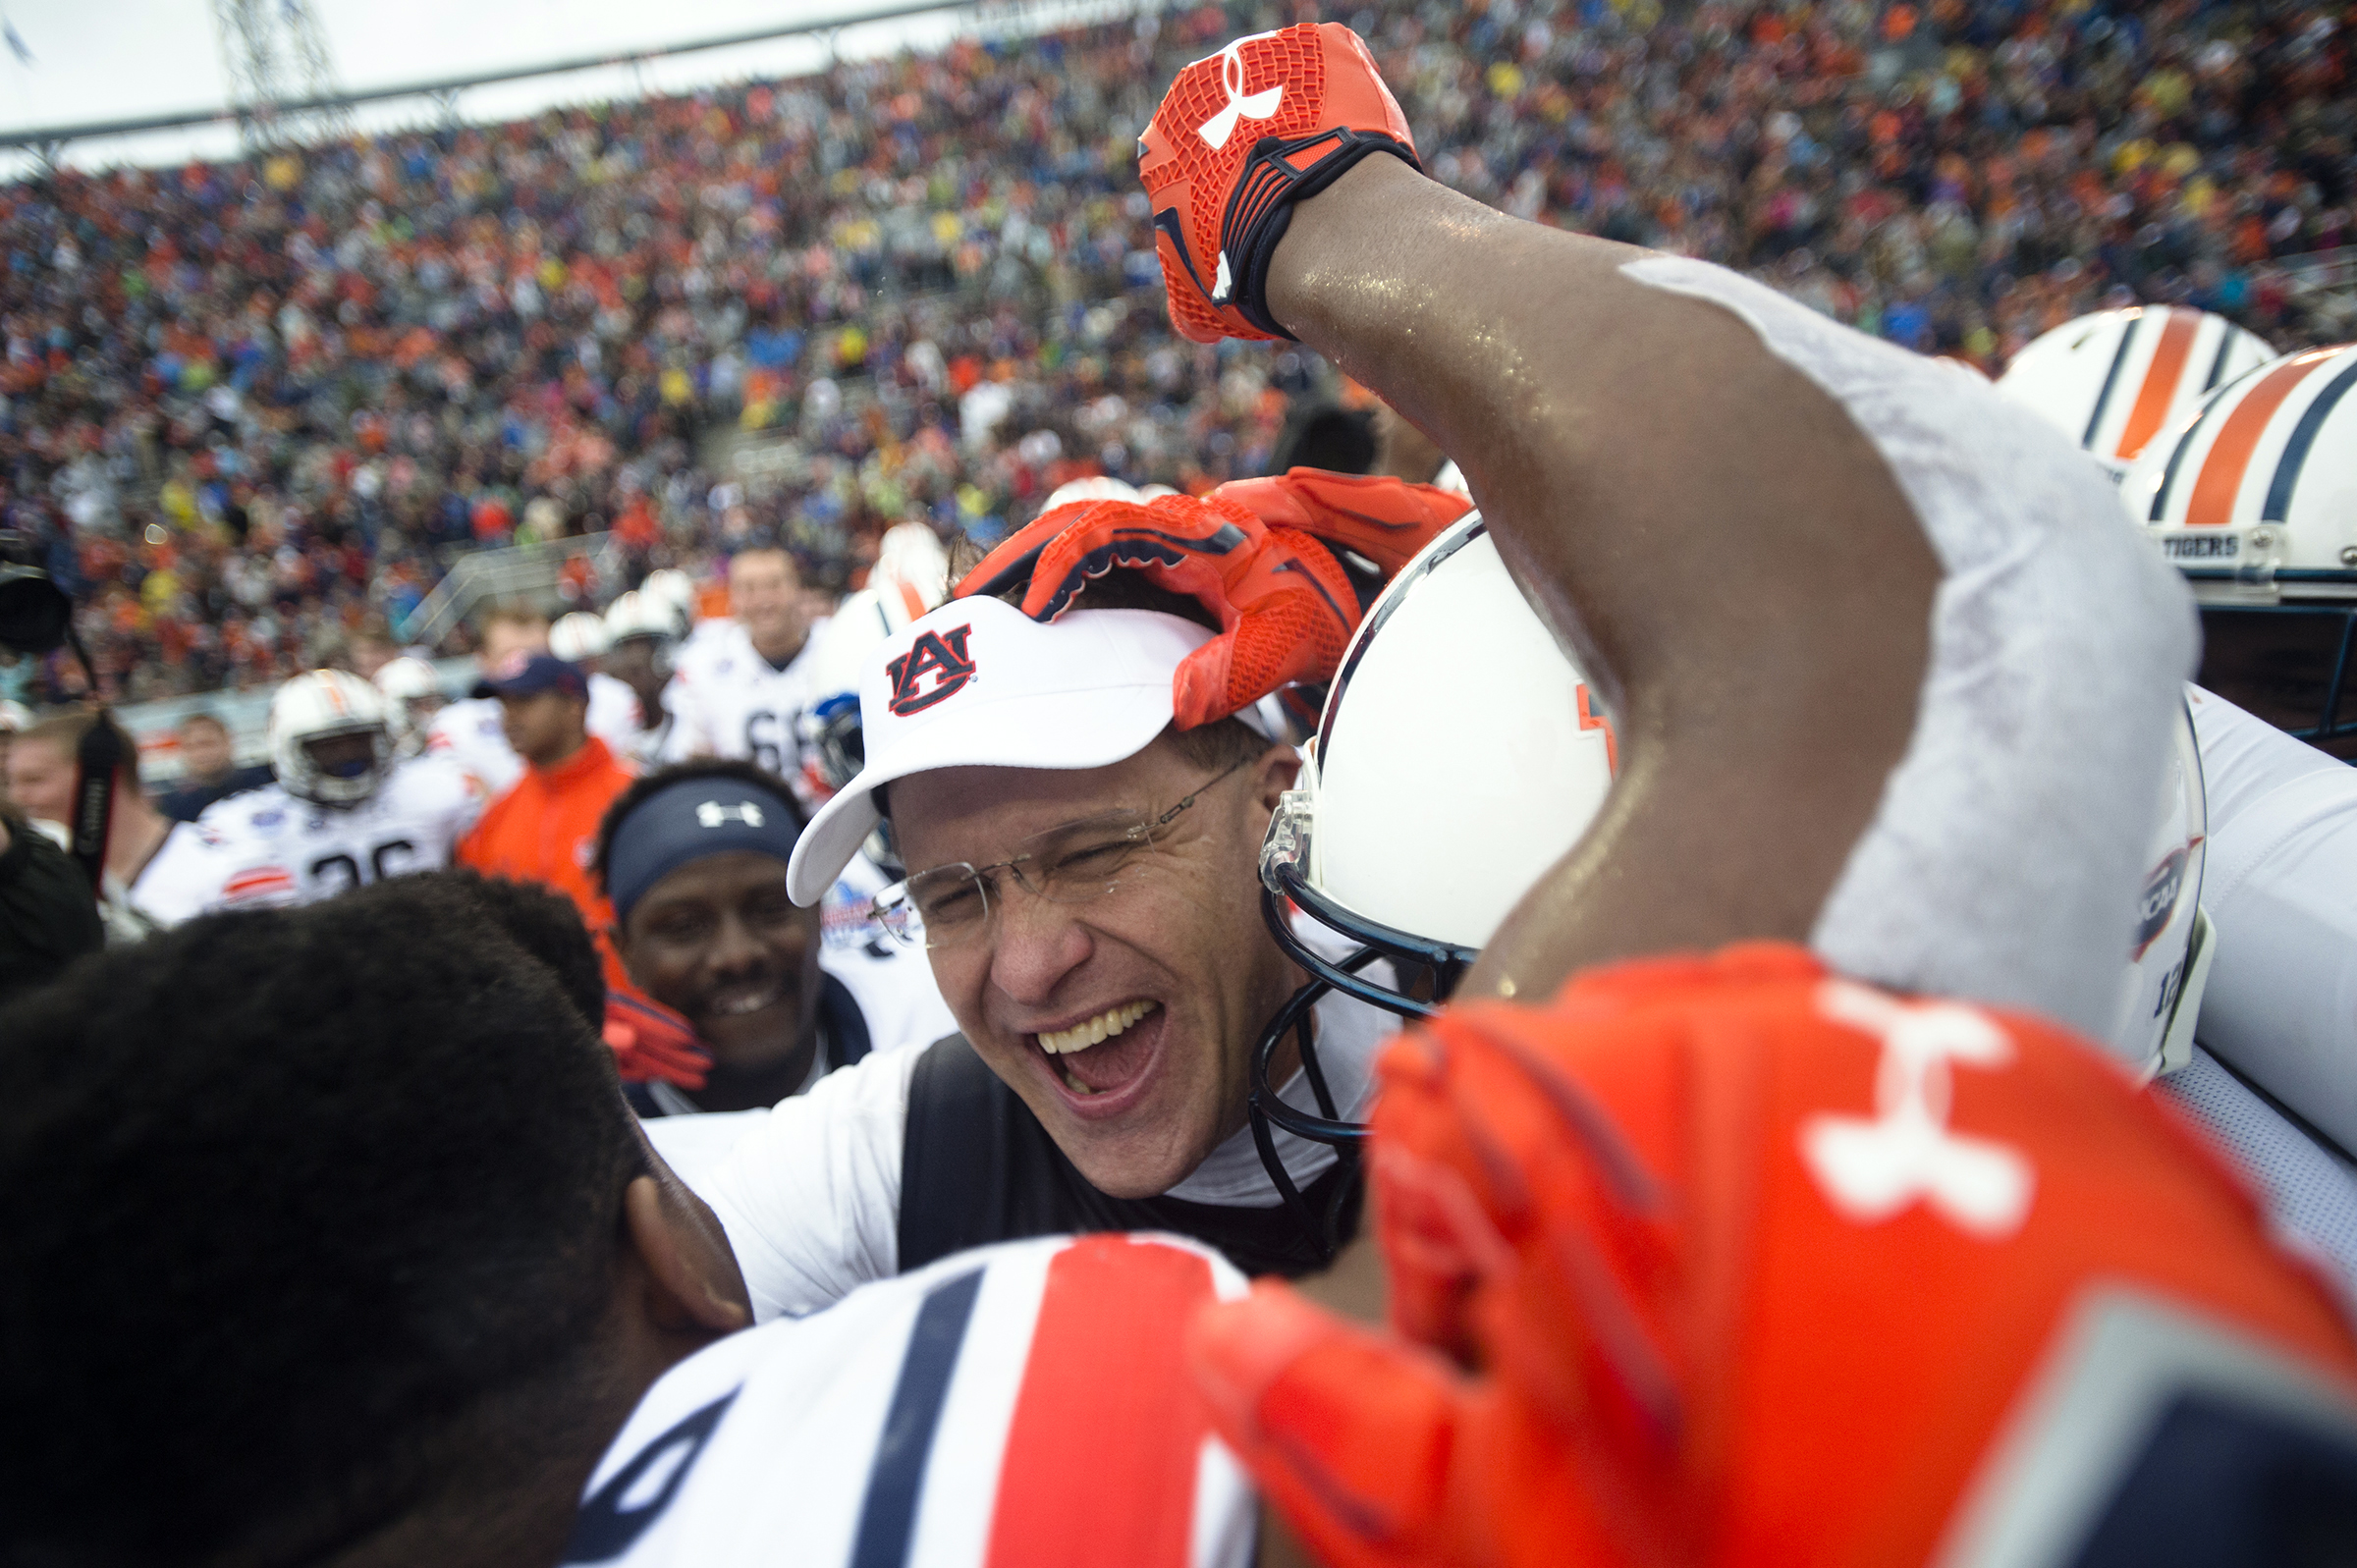 Auburn coach Gus Malzahn, center, celebrates with his players after they defeated Memphis 31-10 in the Birmingham Bowl NCAA college football game, Wednesday, Dec. 30, 2015, in Birmingham, Ala. (Albert Cesare/The Montgomery Advertiser via AP)  NO SALES; MA